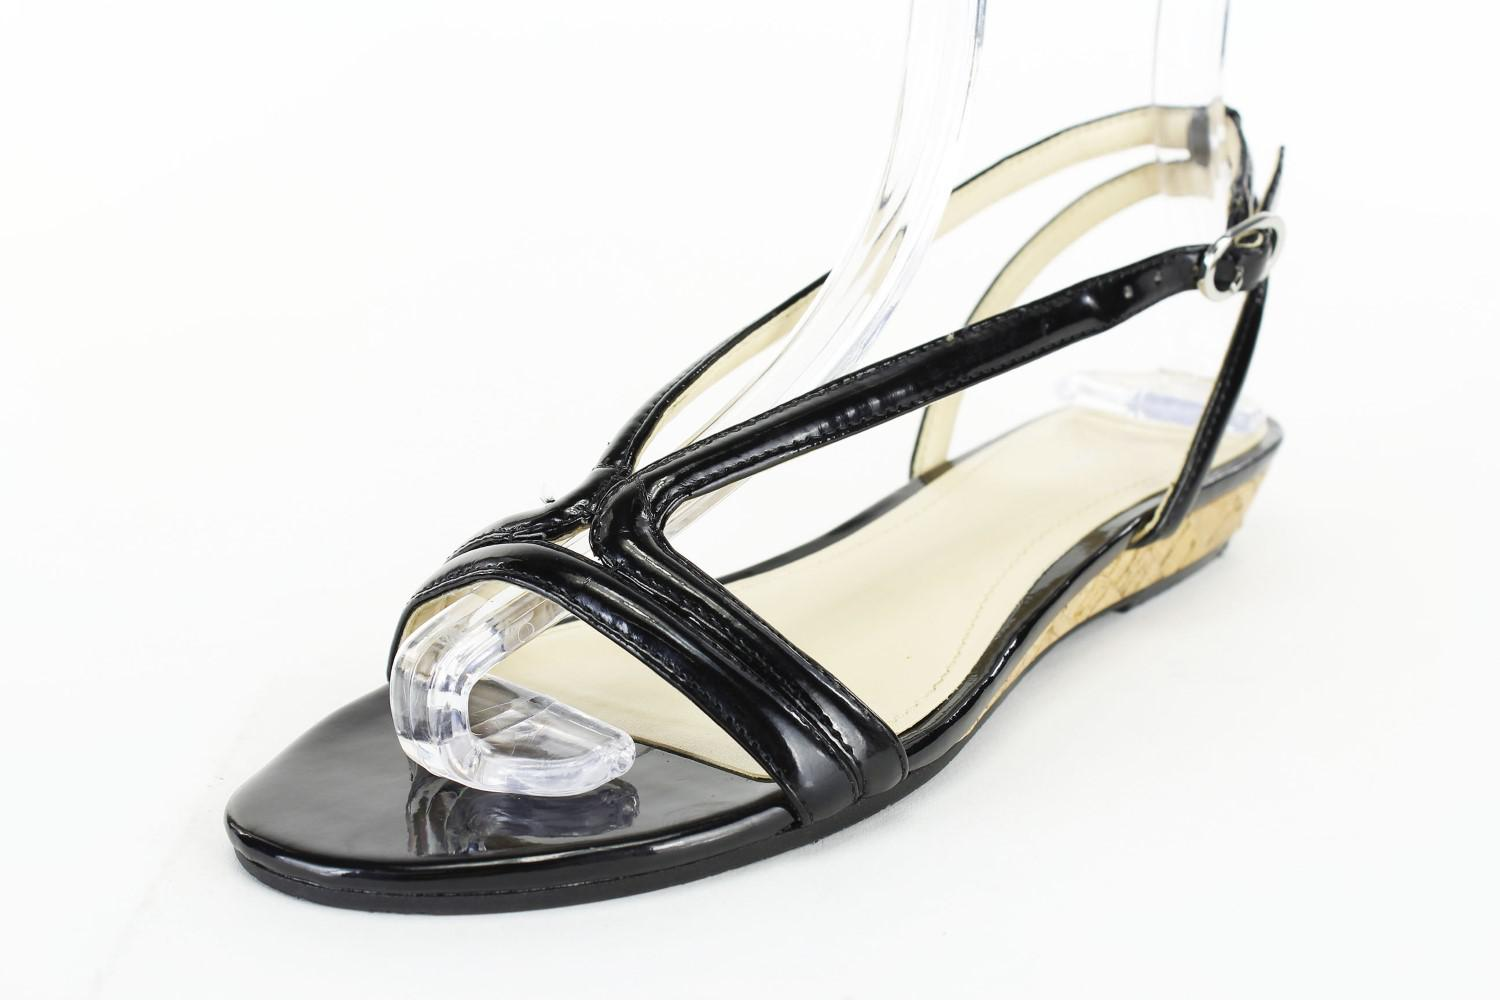 9328ef40c64 Lyst - Calvin Klein Like New Womens Open Toe Sandals Size 7 Us ...